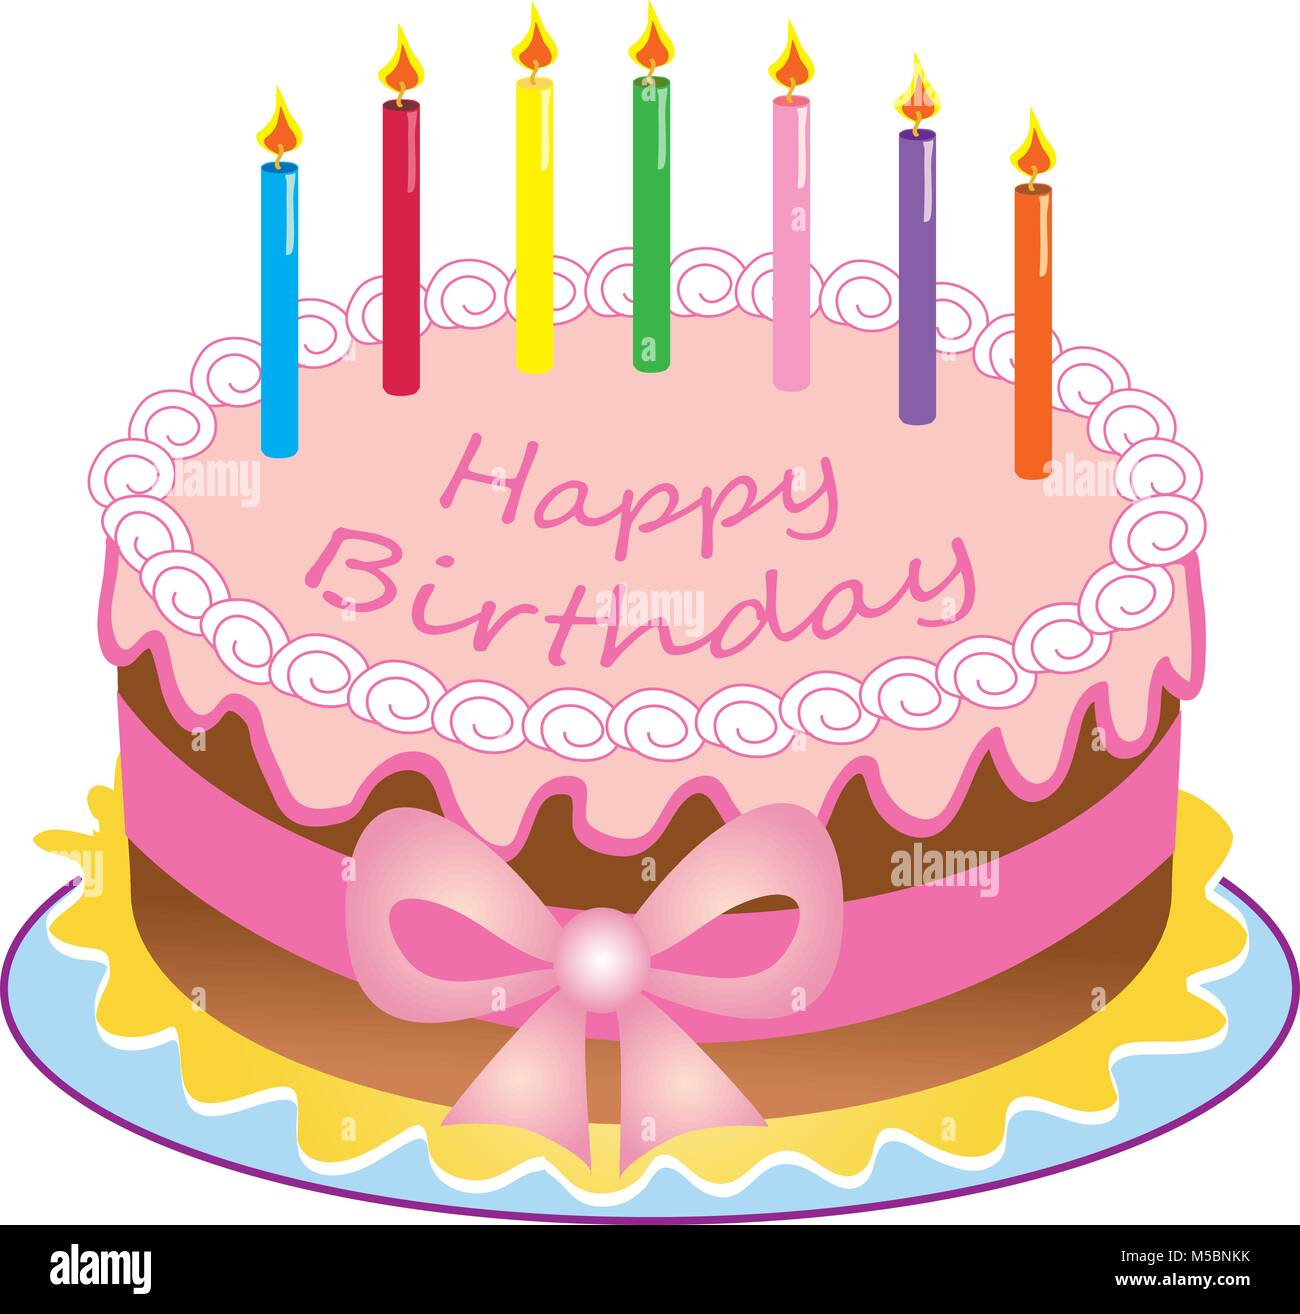 Terrific A Cartoon Happy Birthday Cake With Colored Candles Sugar Icing Funny Birthday Cards Online Inifodamsfinfo